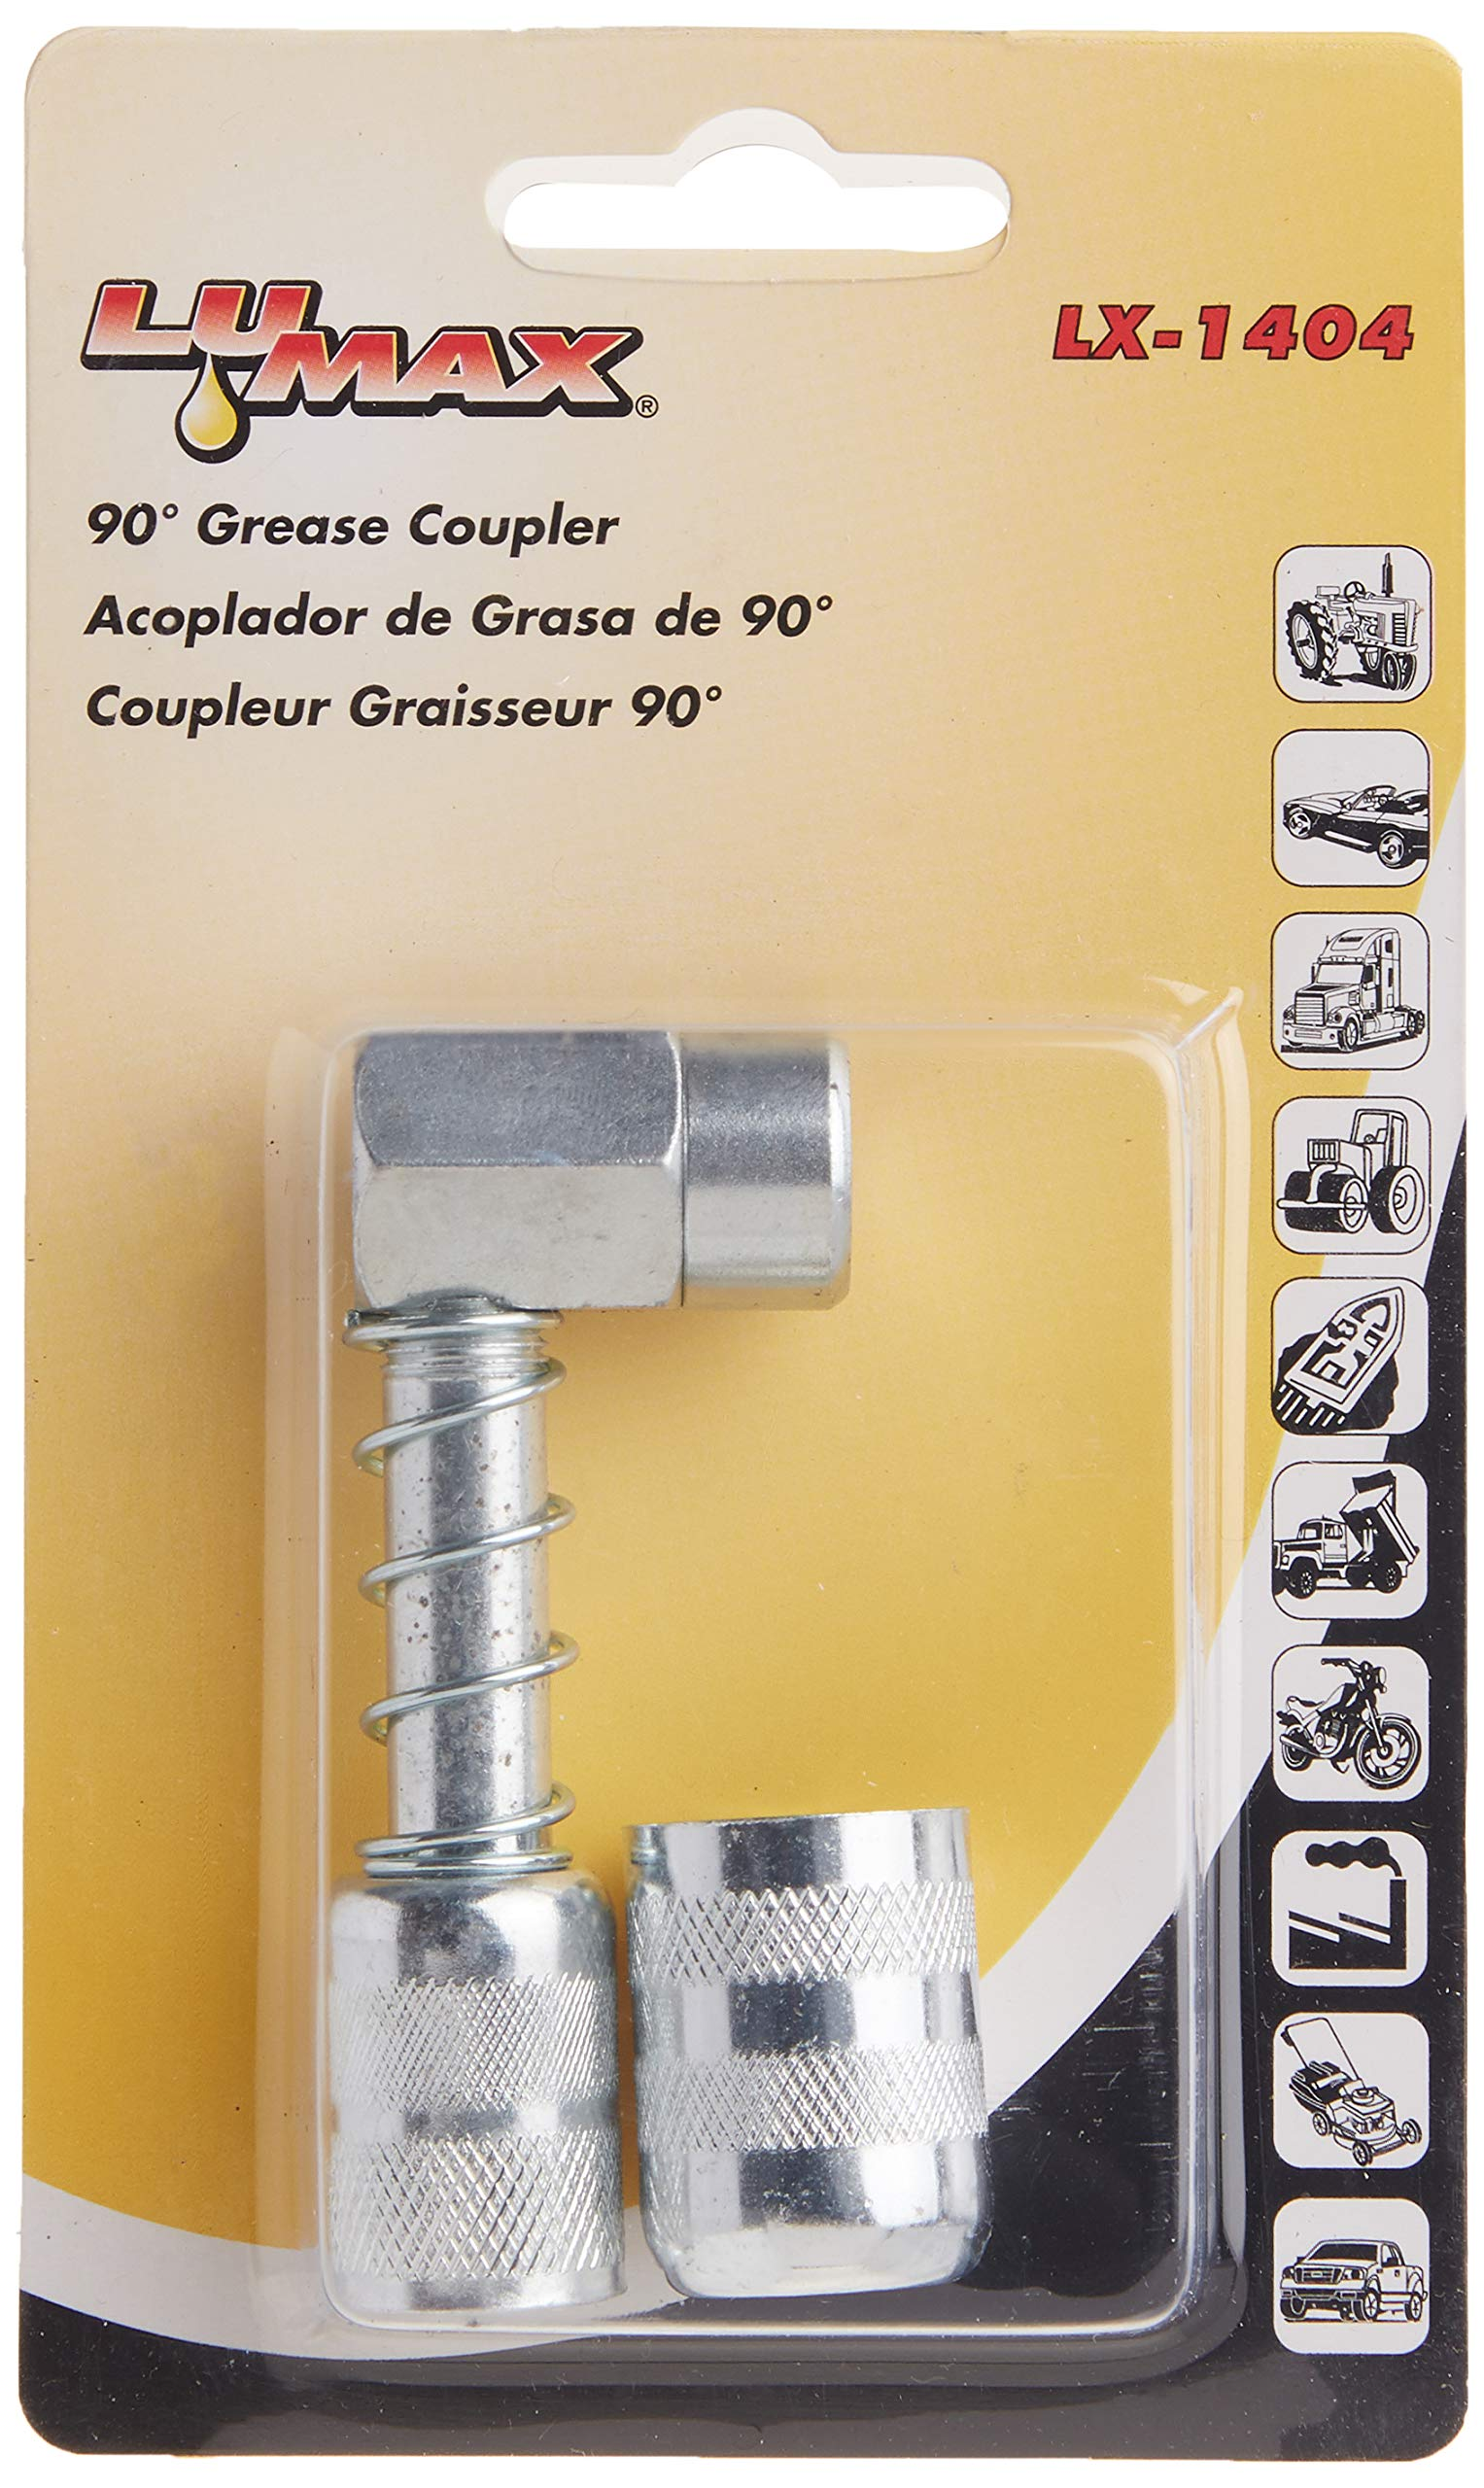 Lumax LX-1404 Silver 90 Degree Grease Coupler for Hard-to-Reach Grease Fittings on Cars, Trucks, Farm Equipment. Ideal for Lubrication of Front and All-Wheel Drive Vehicles.